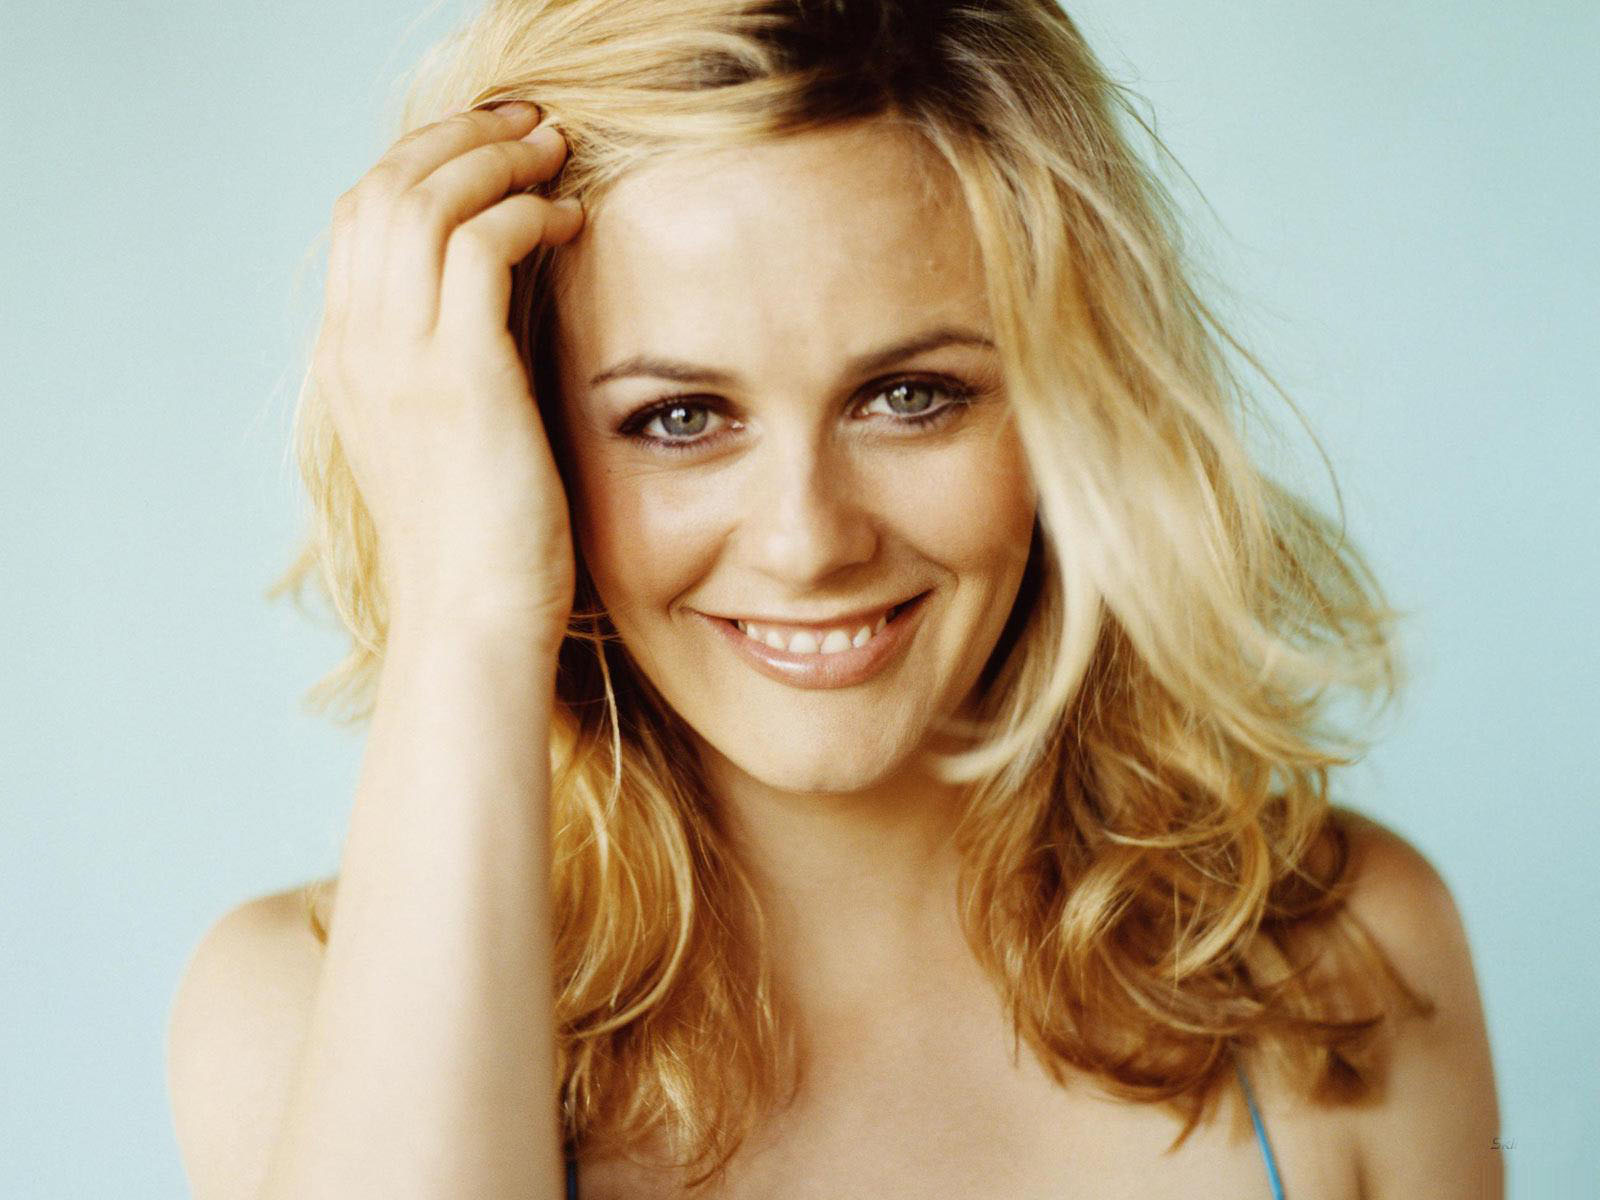 Alicia Silverstone Wallpapers High Quality Download Free